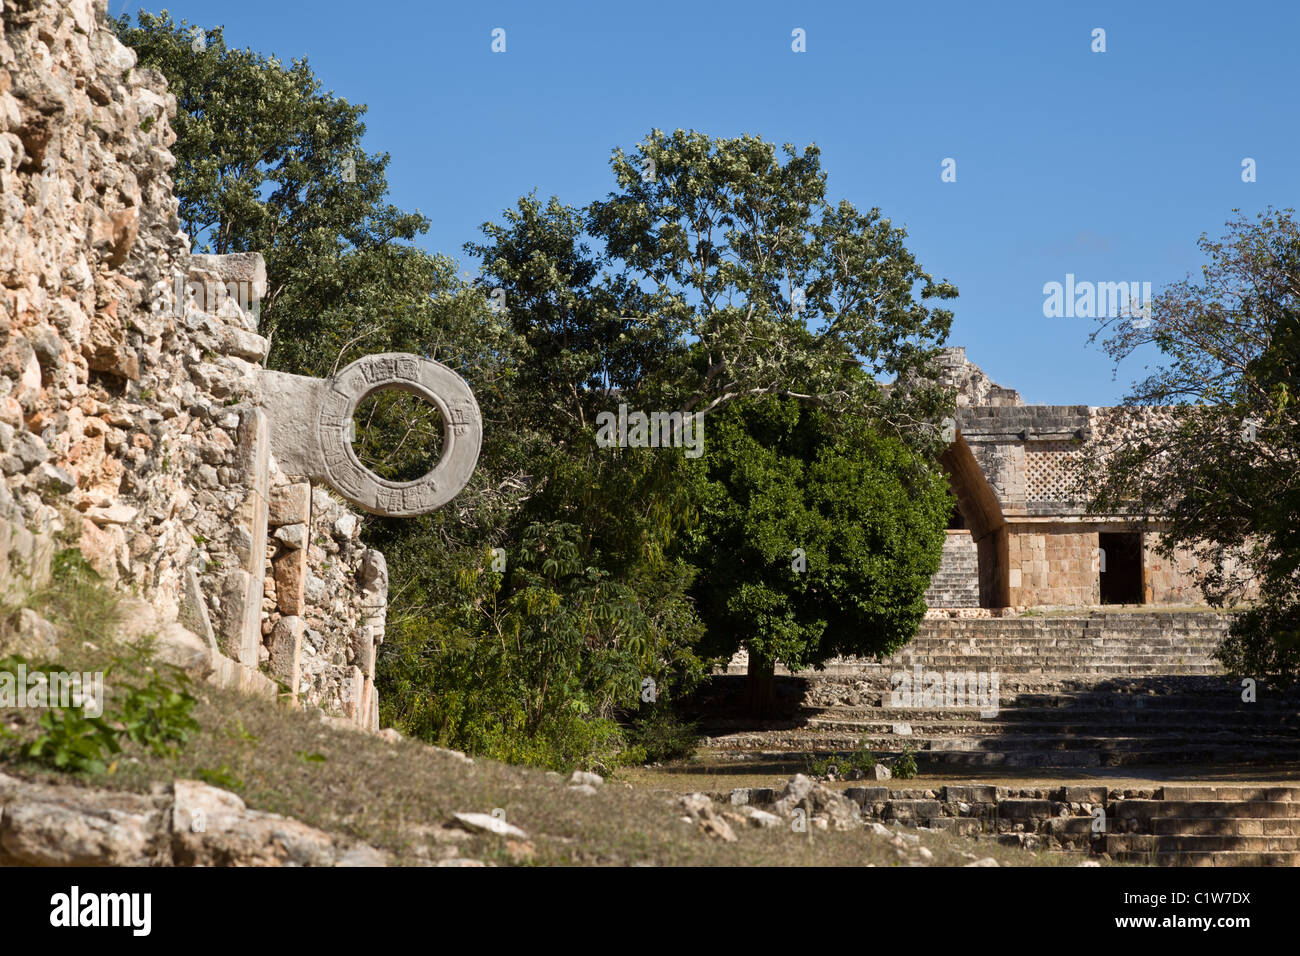 Maya ball court with marker in the Puuc style Maya ruins of Uxmal in the Yucatan Peninsula, Mexico. - Stock Image